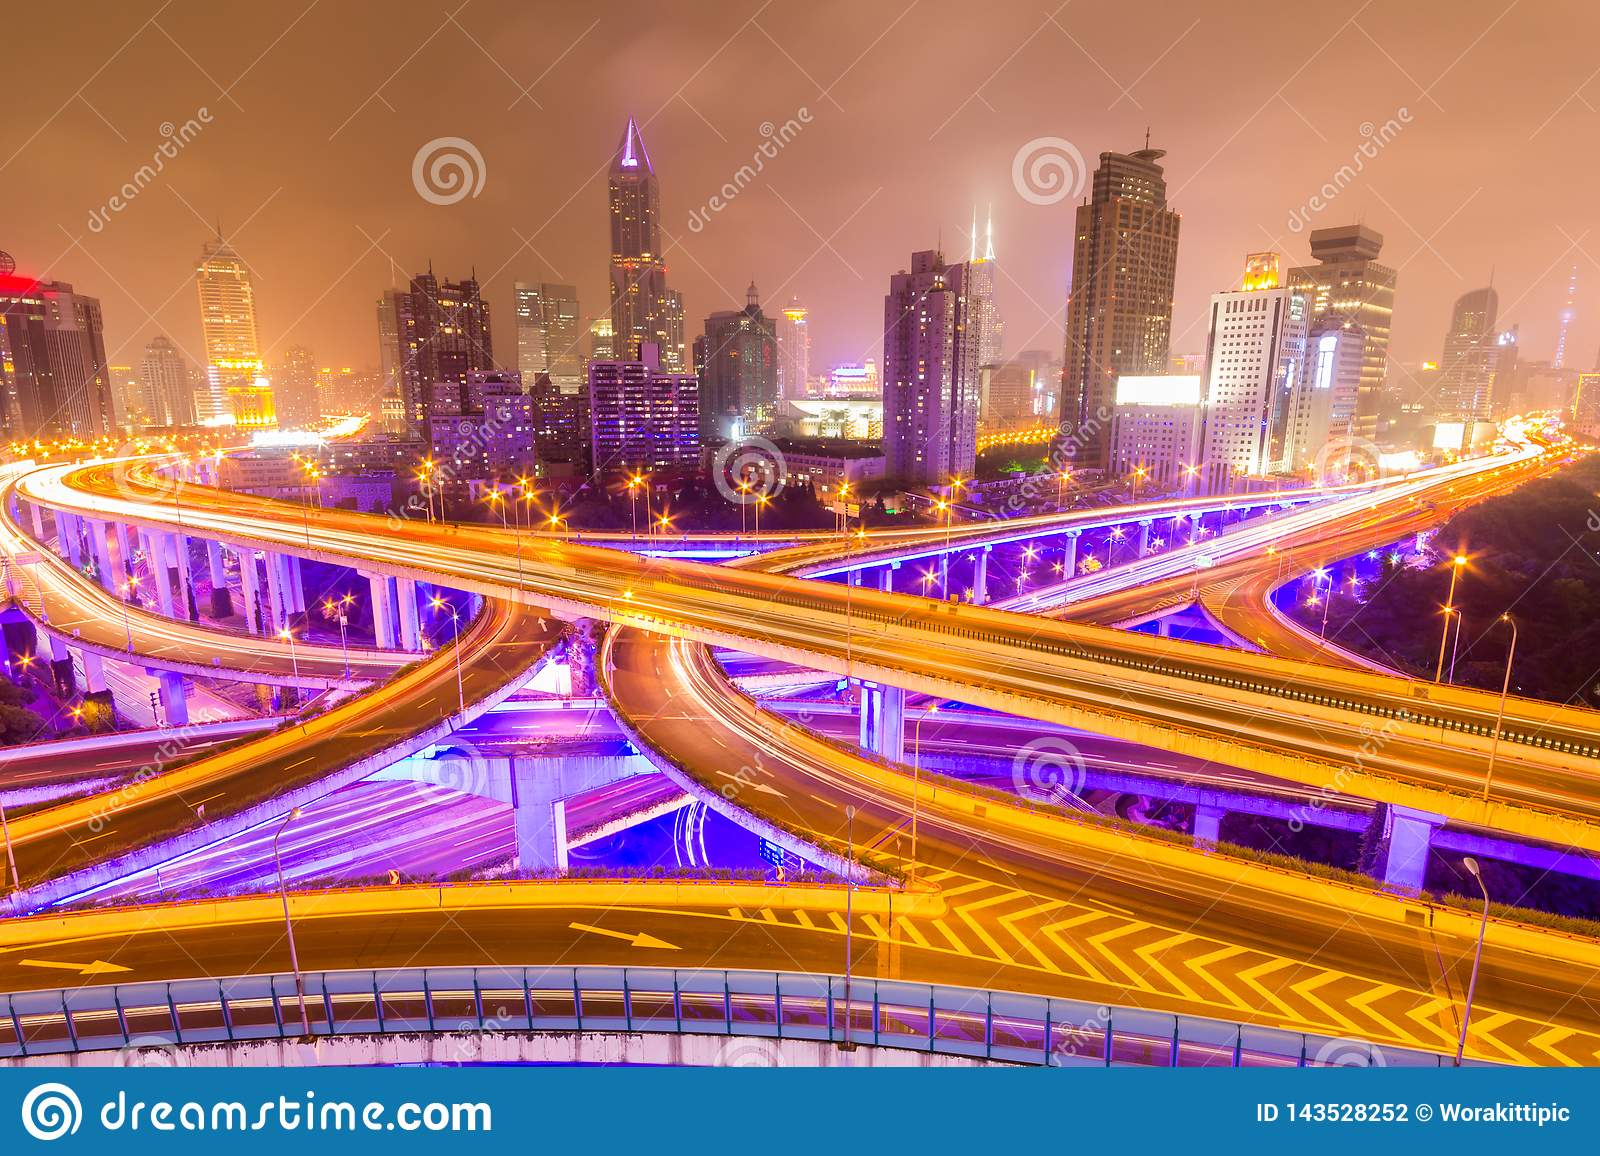 Traffic tracks in the downtown area of Shanghai at night